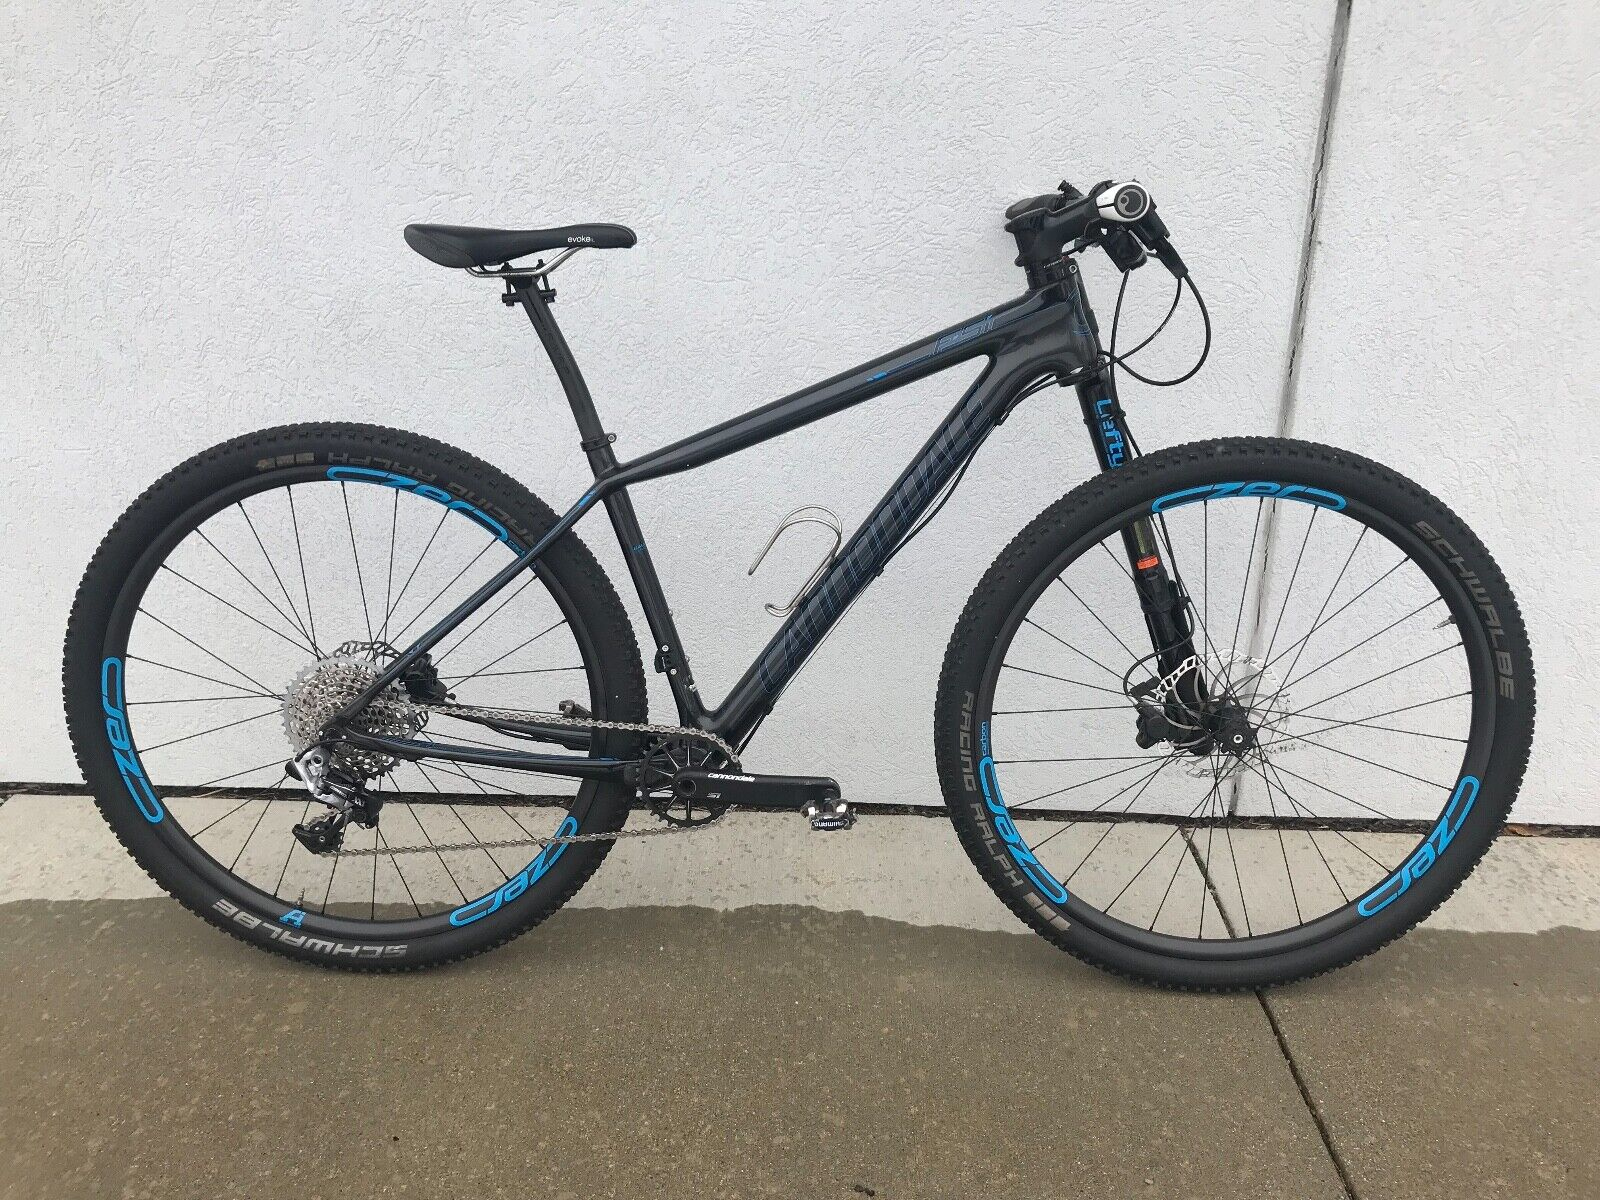 2016 CANNONDALE FSI CARBON 2 SIZE MEDIUM, XX1, FULL CARBON, GREAT CONDITION